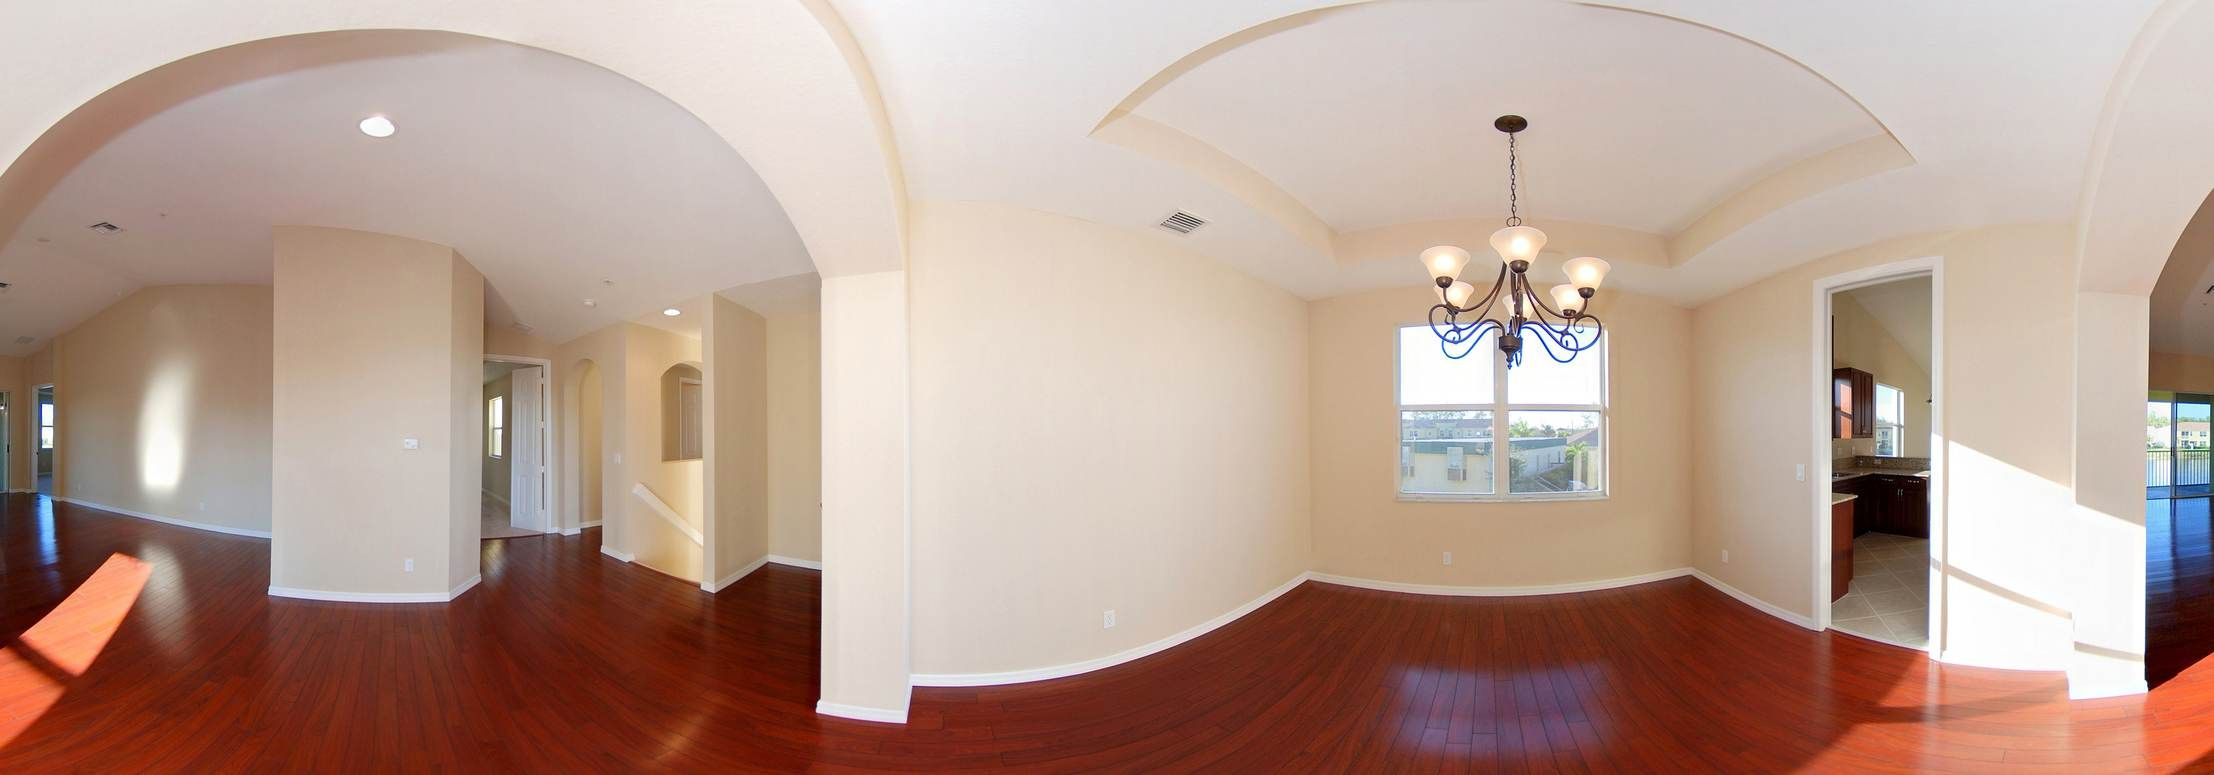 Dinning Room, Great Room & Foyer